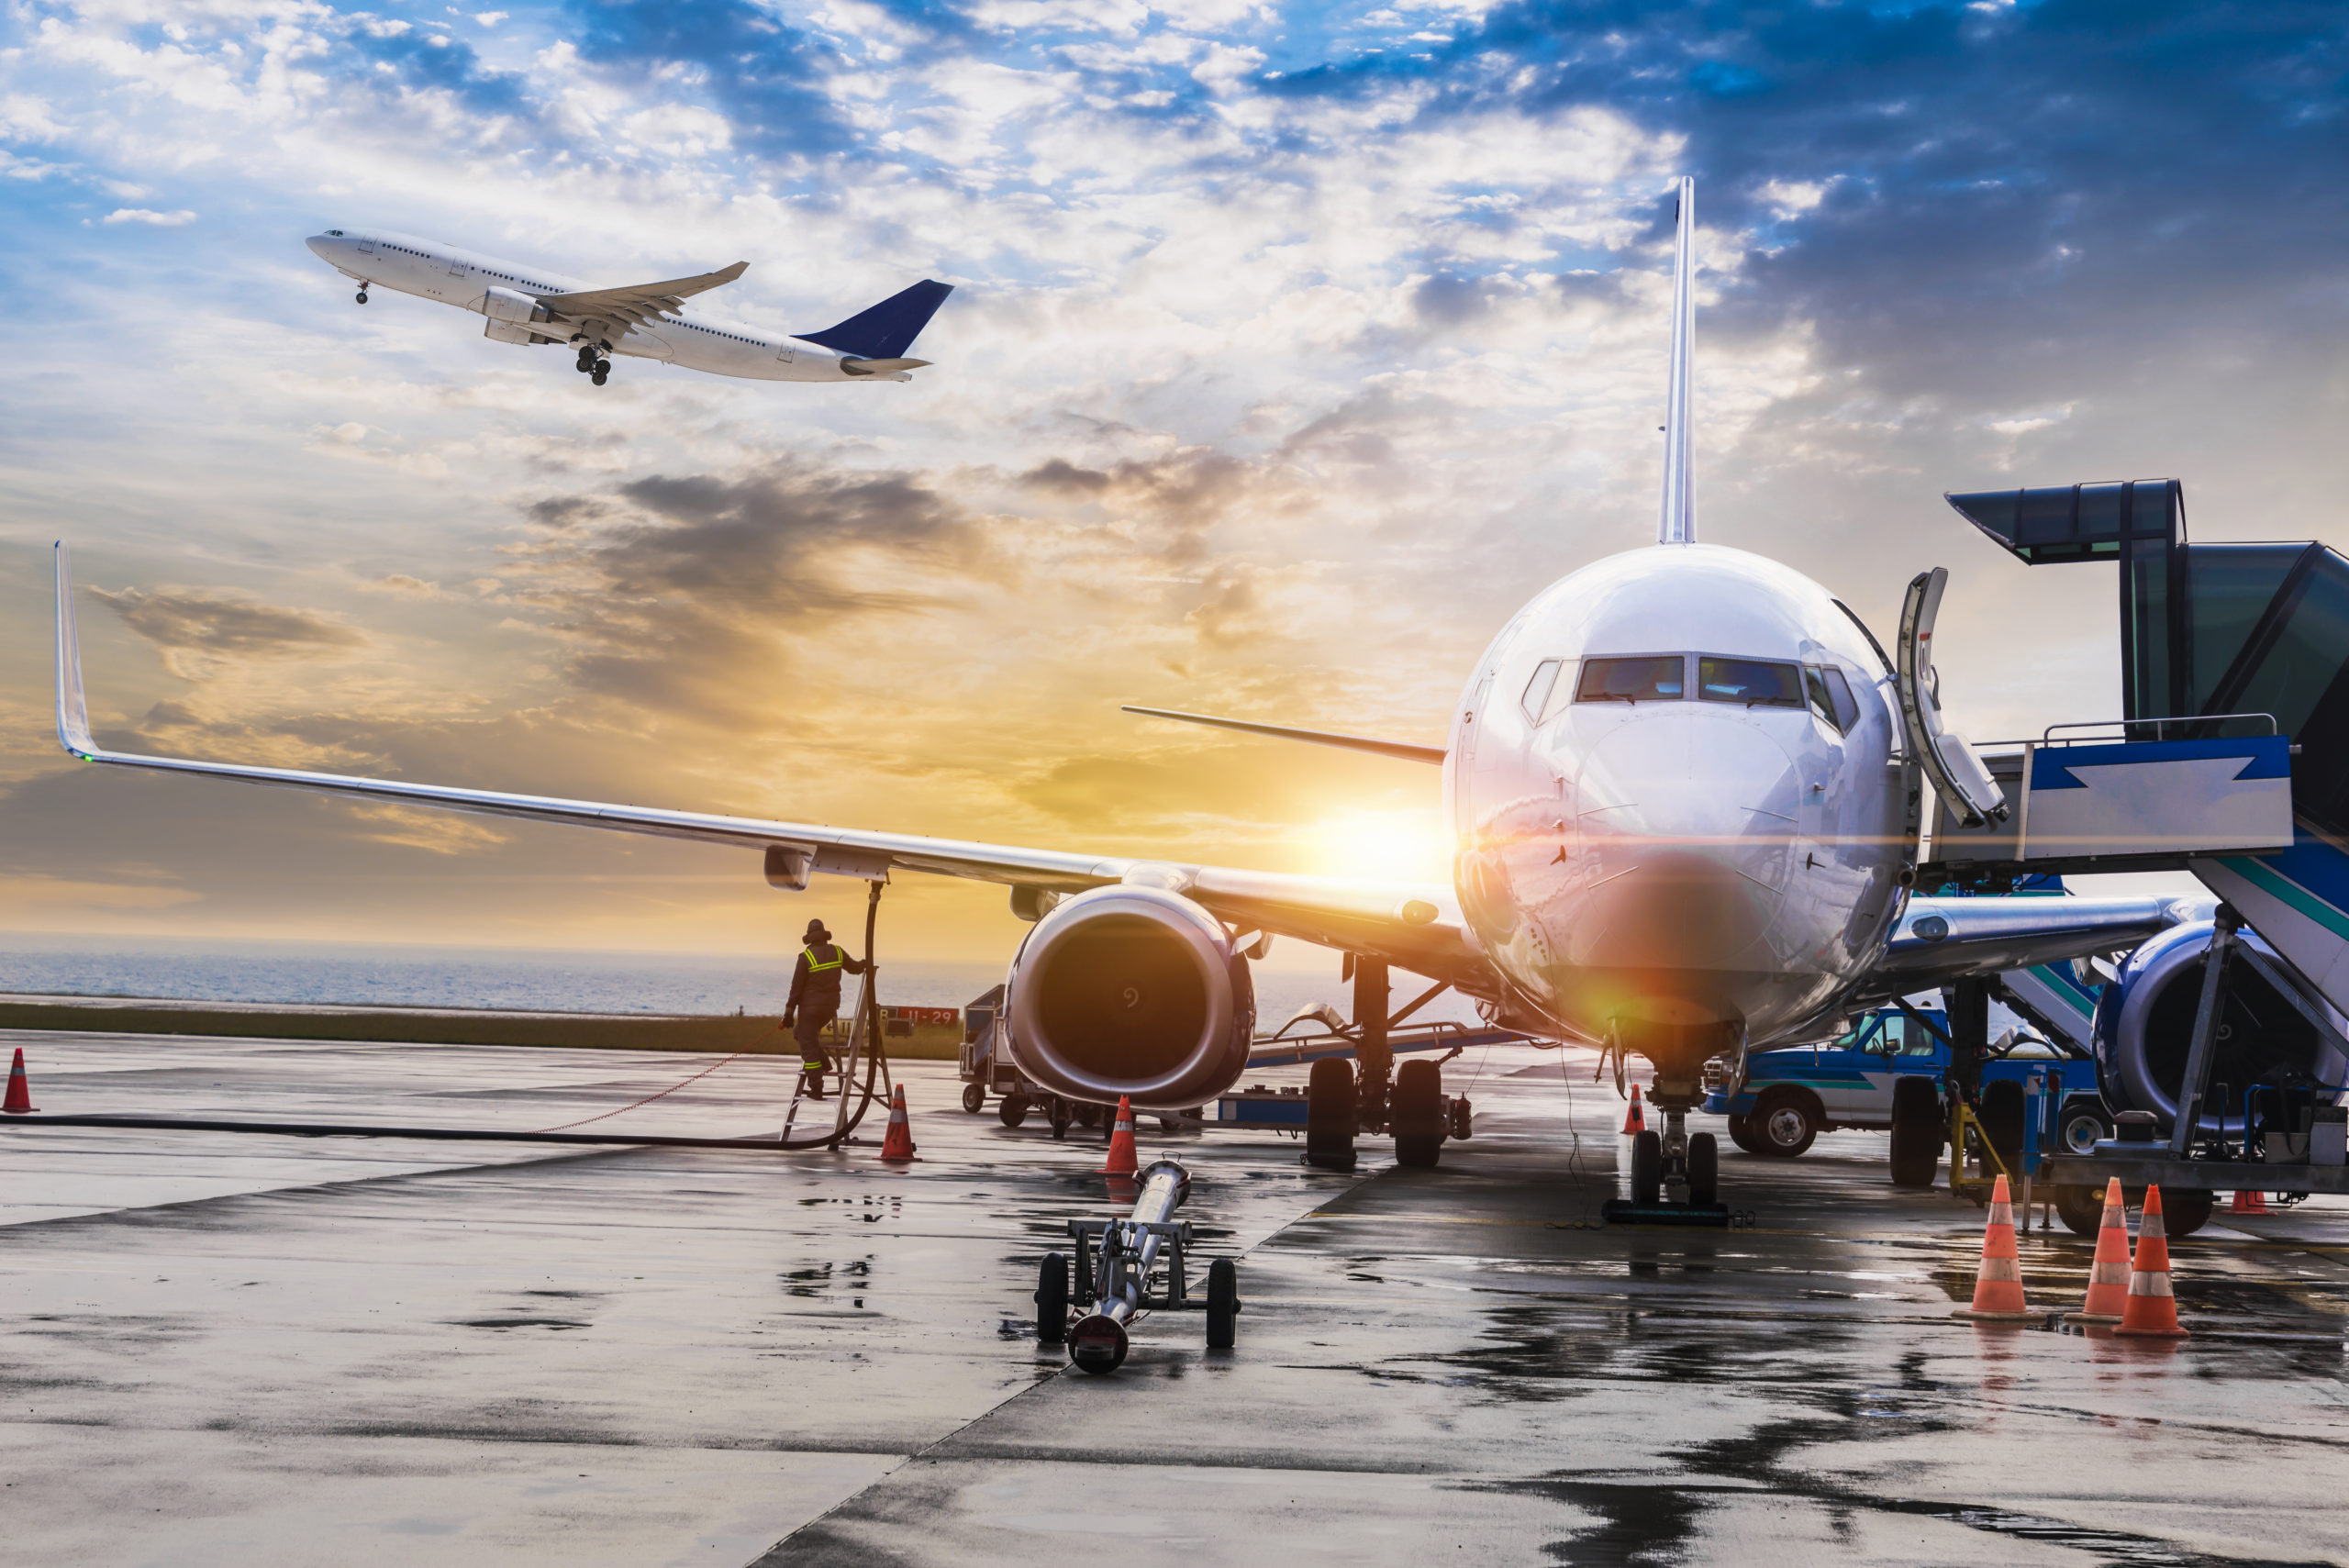 Conax to attend 6th Annual Aeronautical Materials and Manufacturing Technology Shanghai International Forum